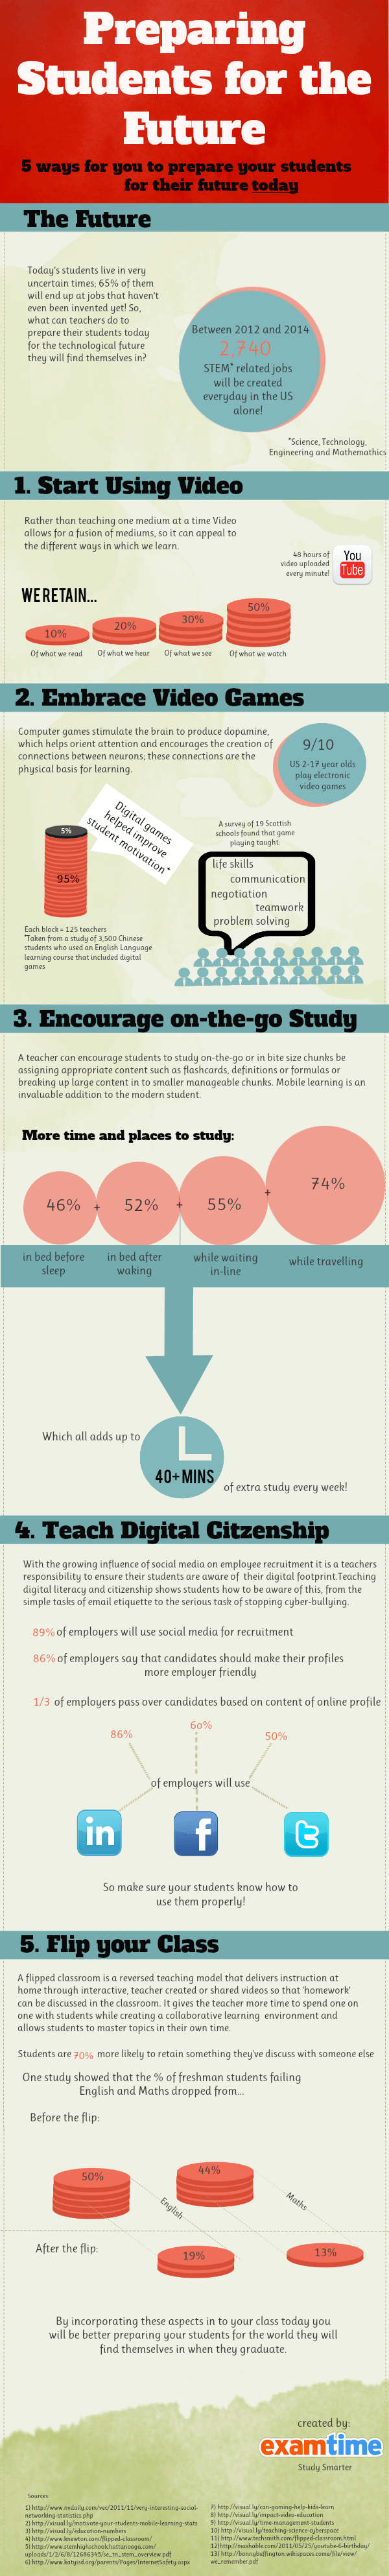 ExamTime-Infographic-Preparing-Students-for-the-Future